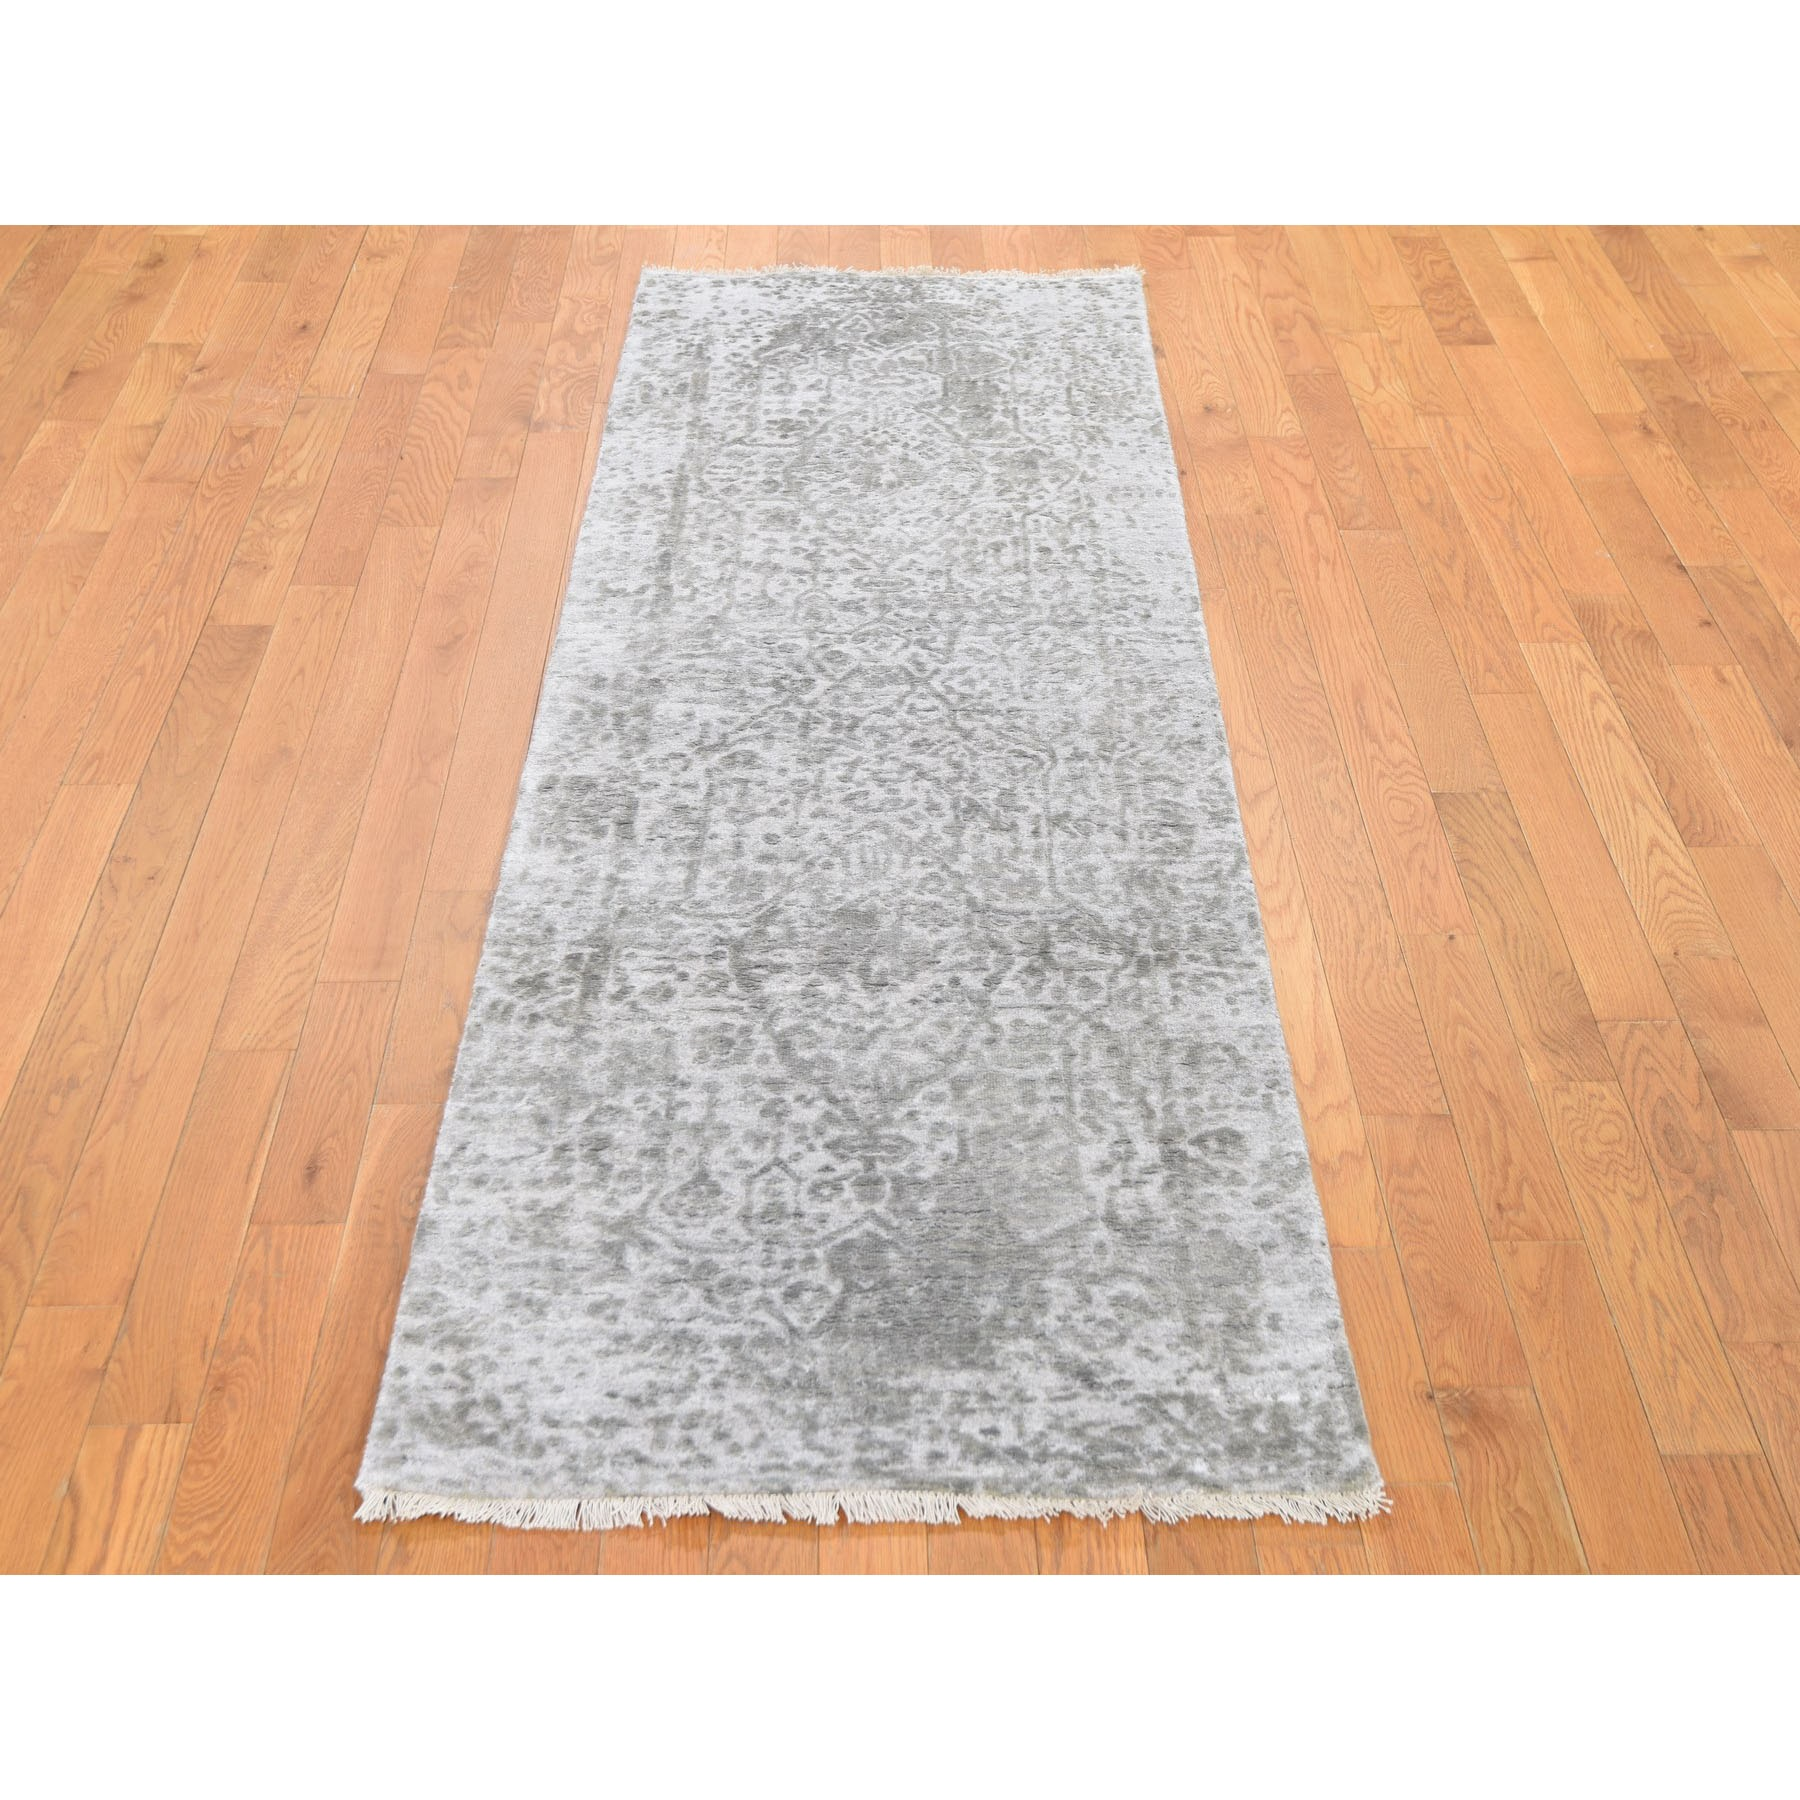 "2'7""x8'1"" Silver-Dark Gray Erased Persian Design Runner Wool and Pure Silk Hand Knotted Oriental Rug"